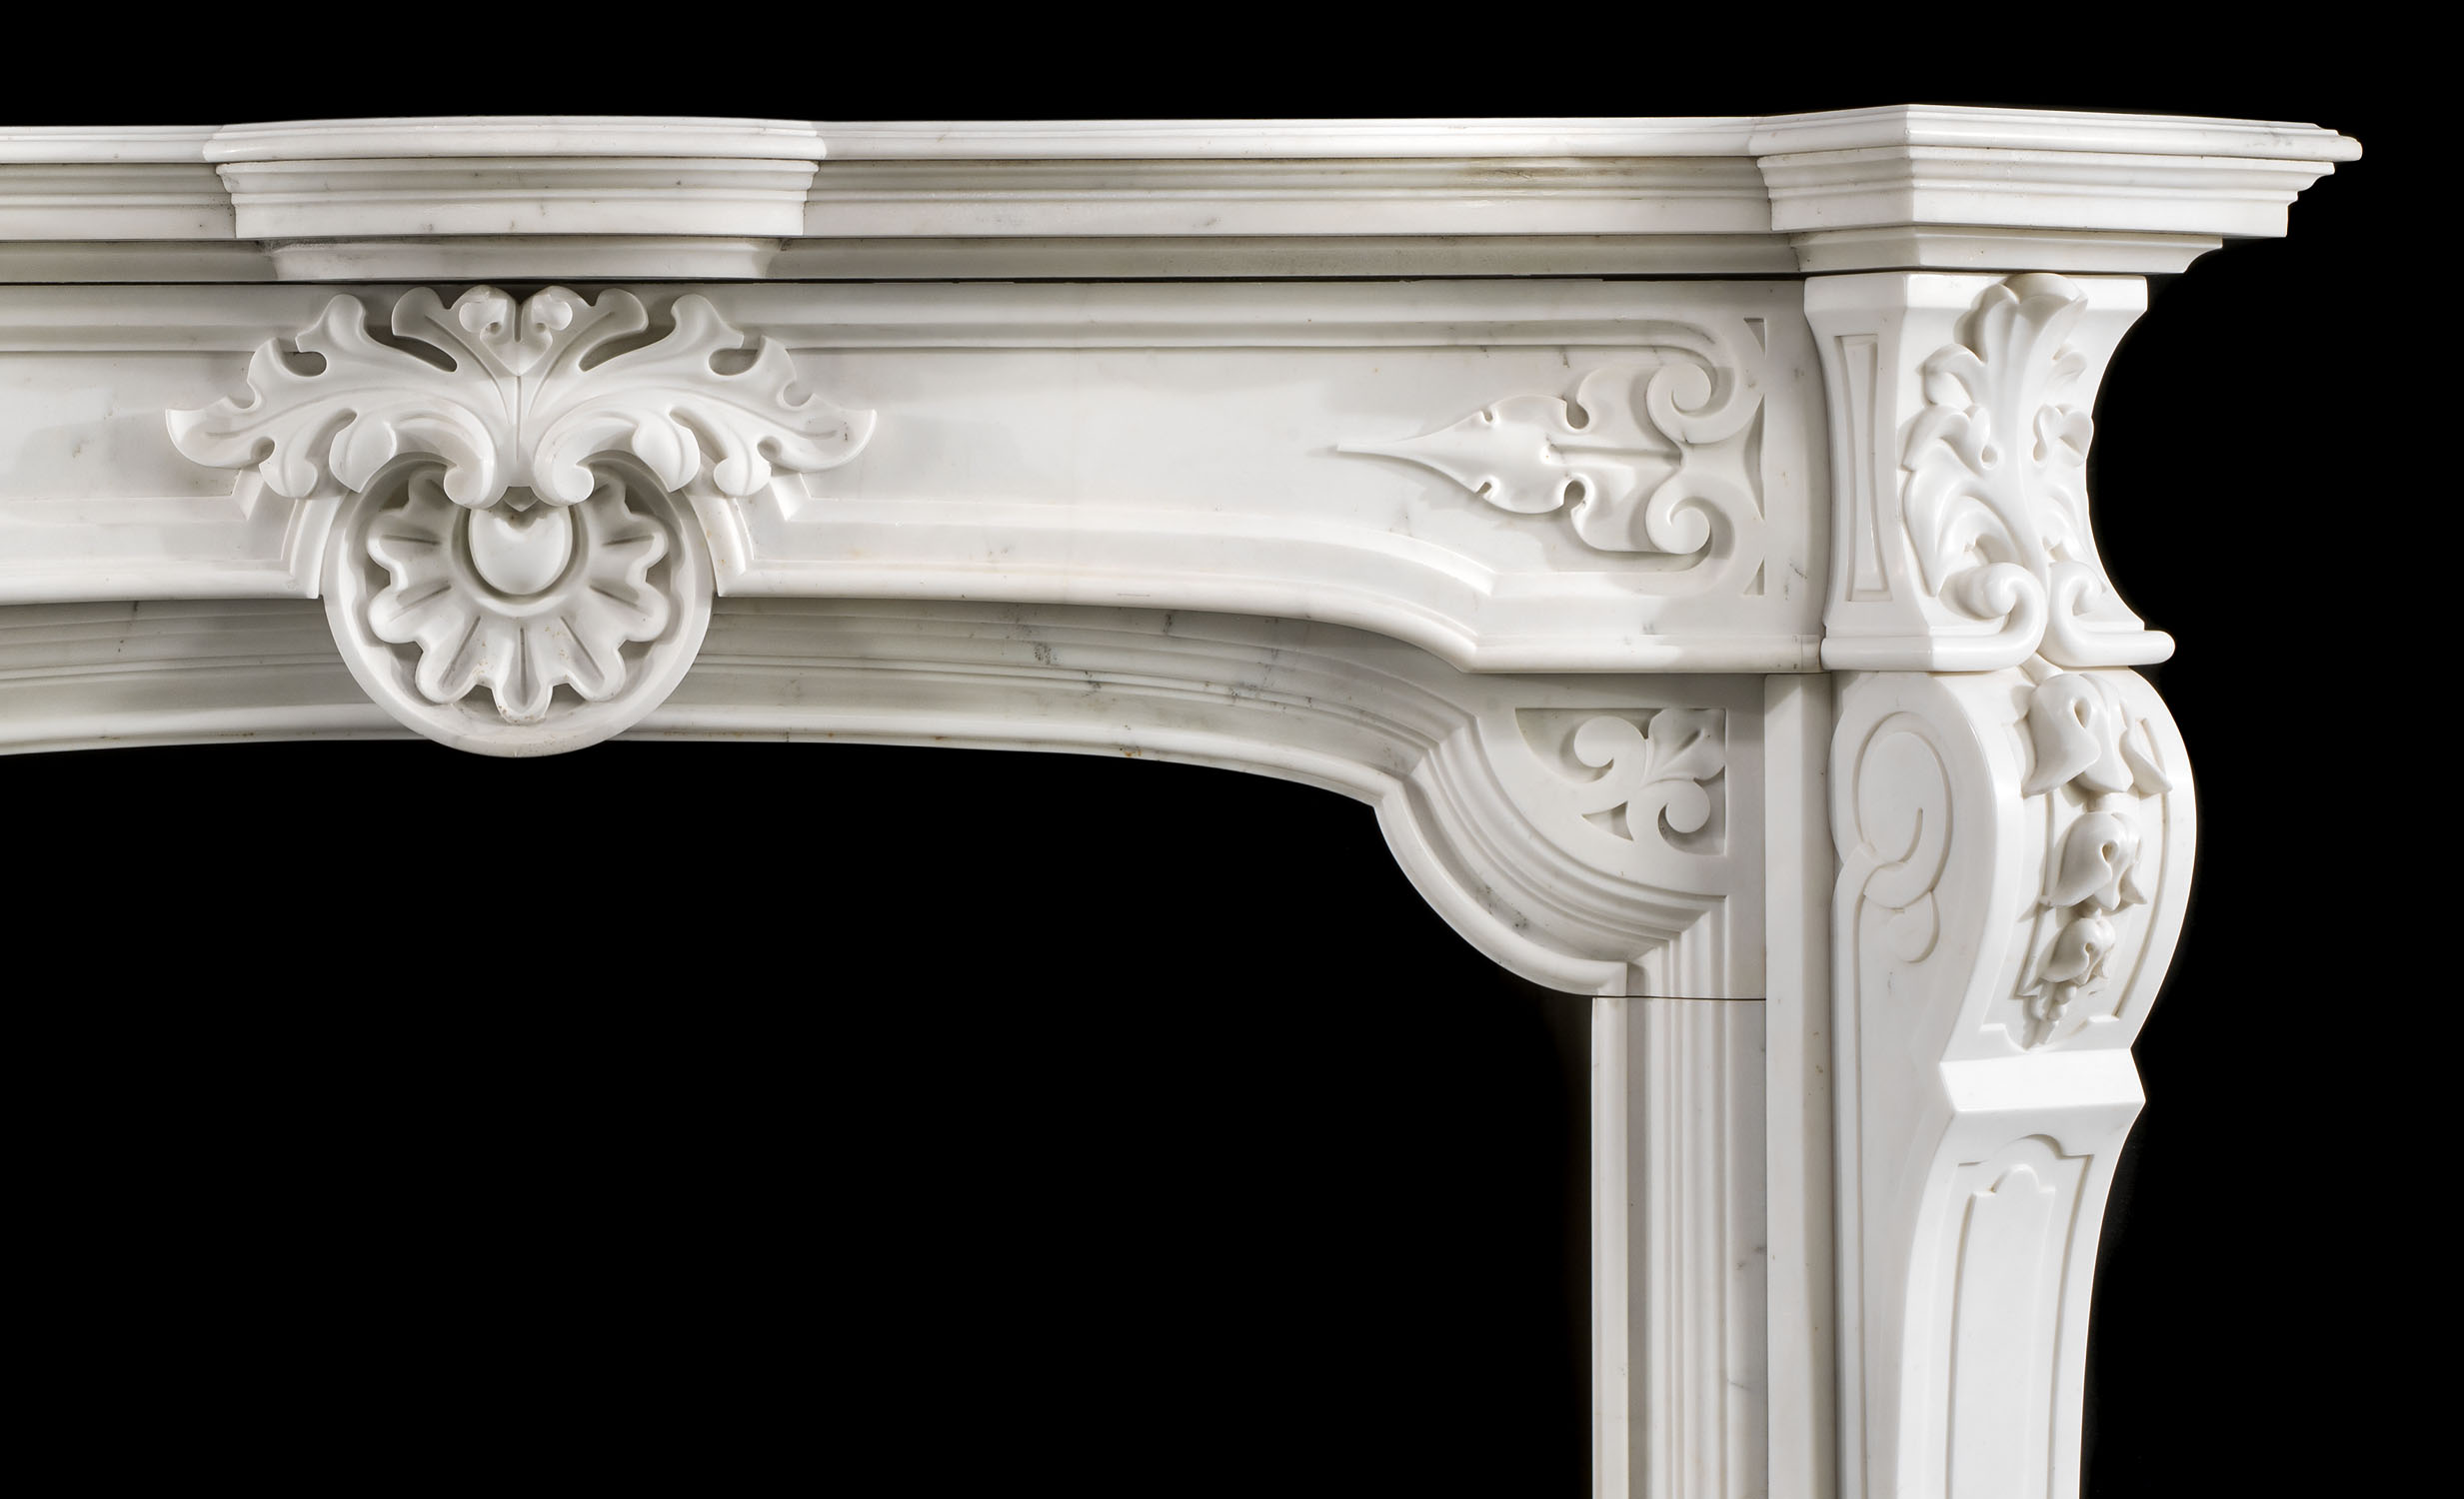 A Statuary Marble French Baroque style antique fireplace surround